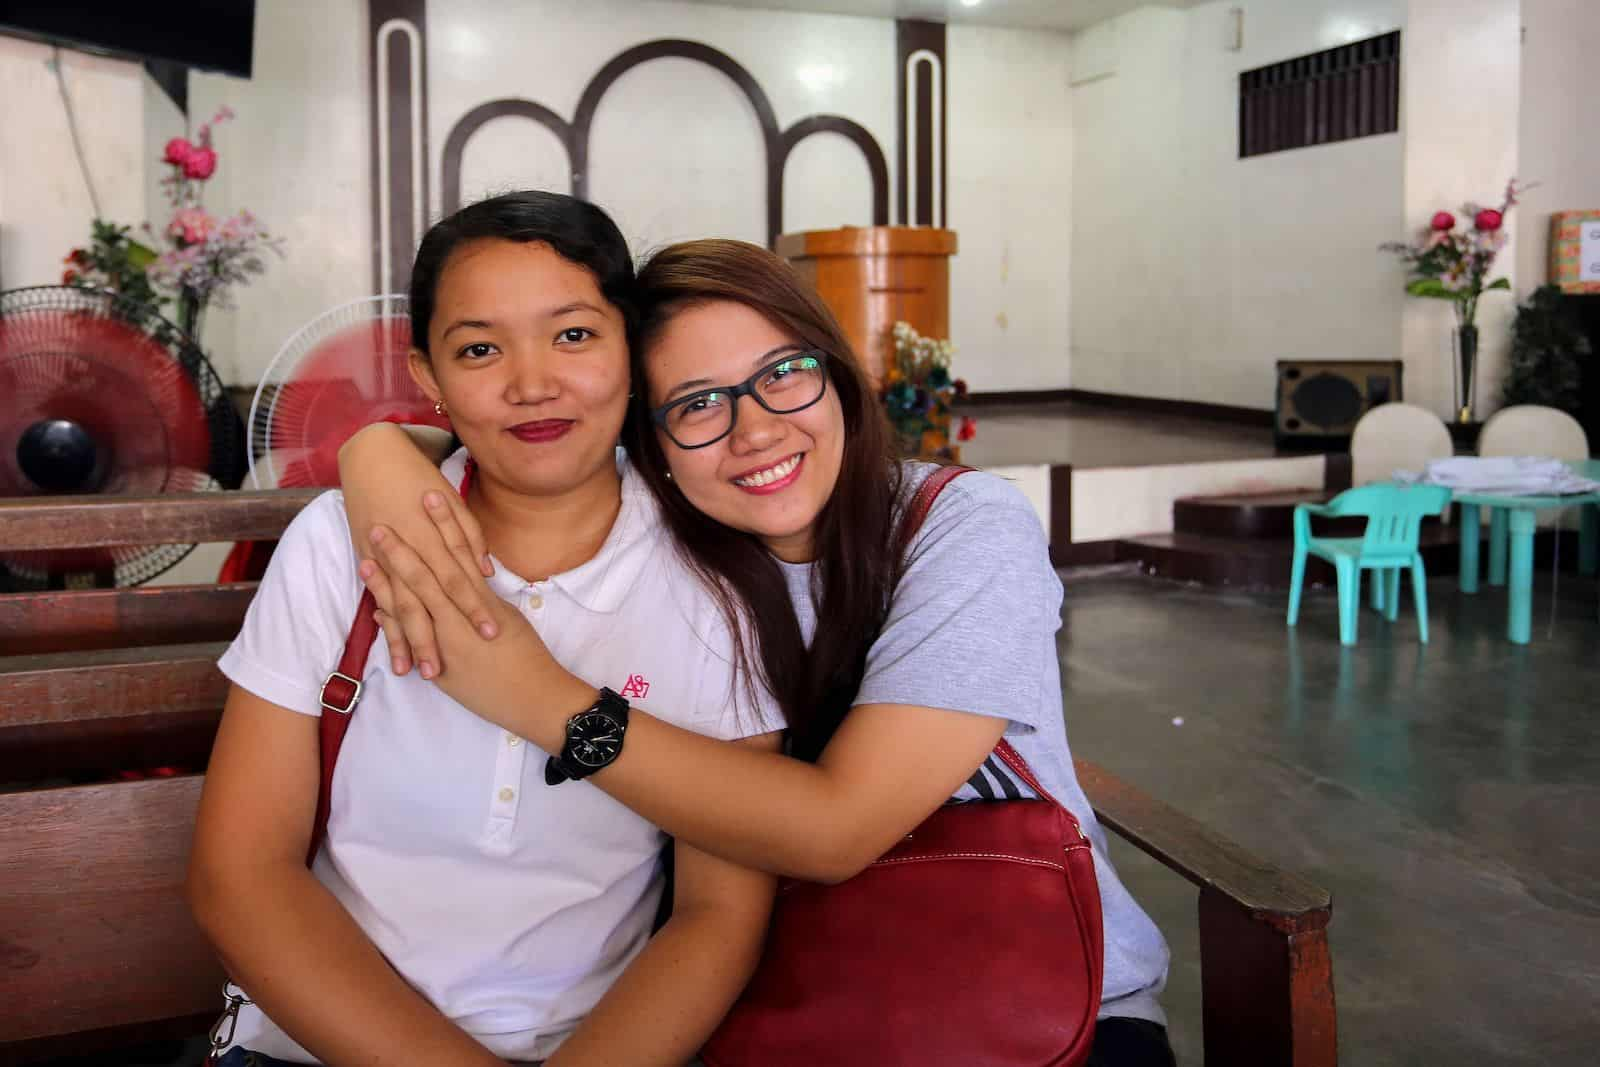 Two young women sit inside a church, one with her arms around the other, both smiling.